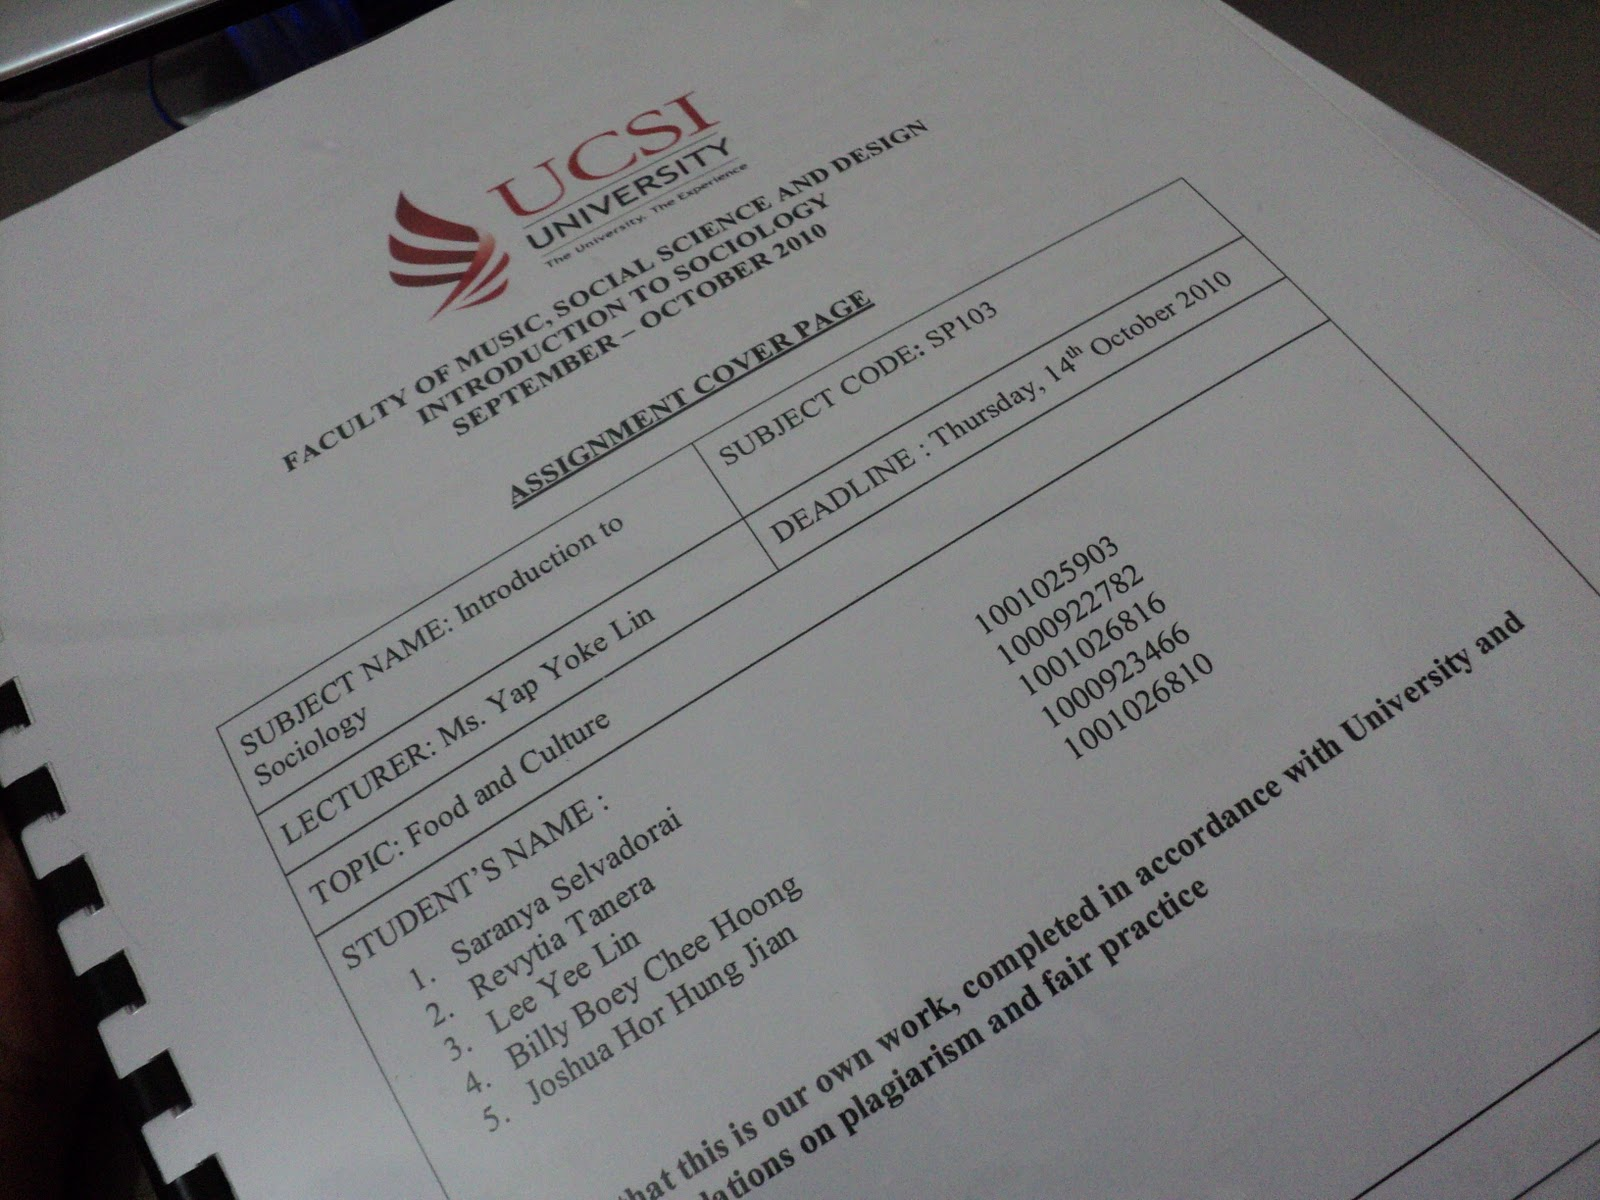 memory laine first year first sem in ucsi